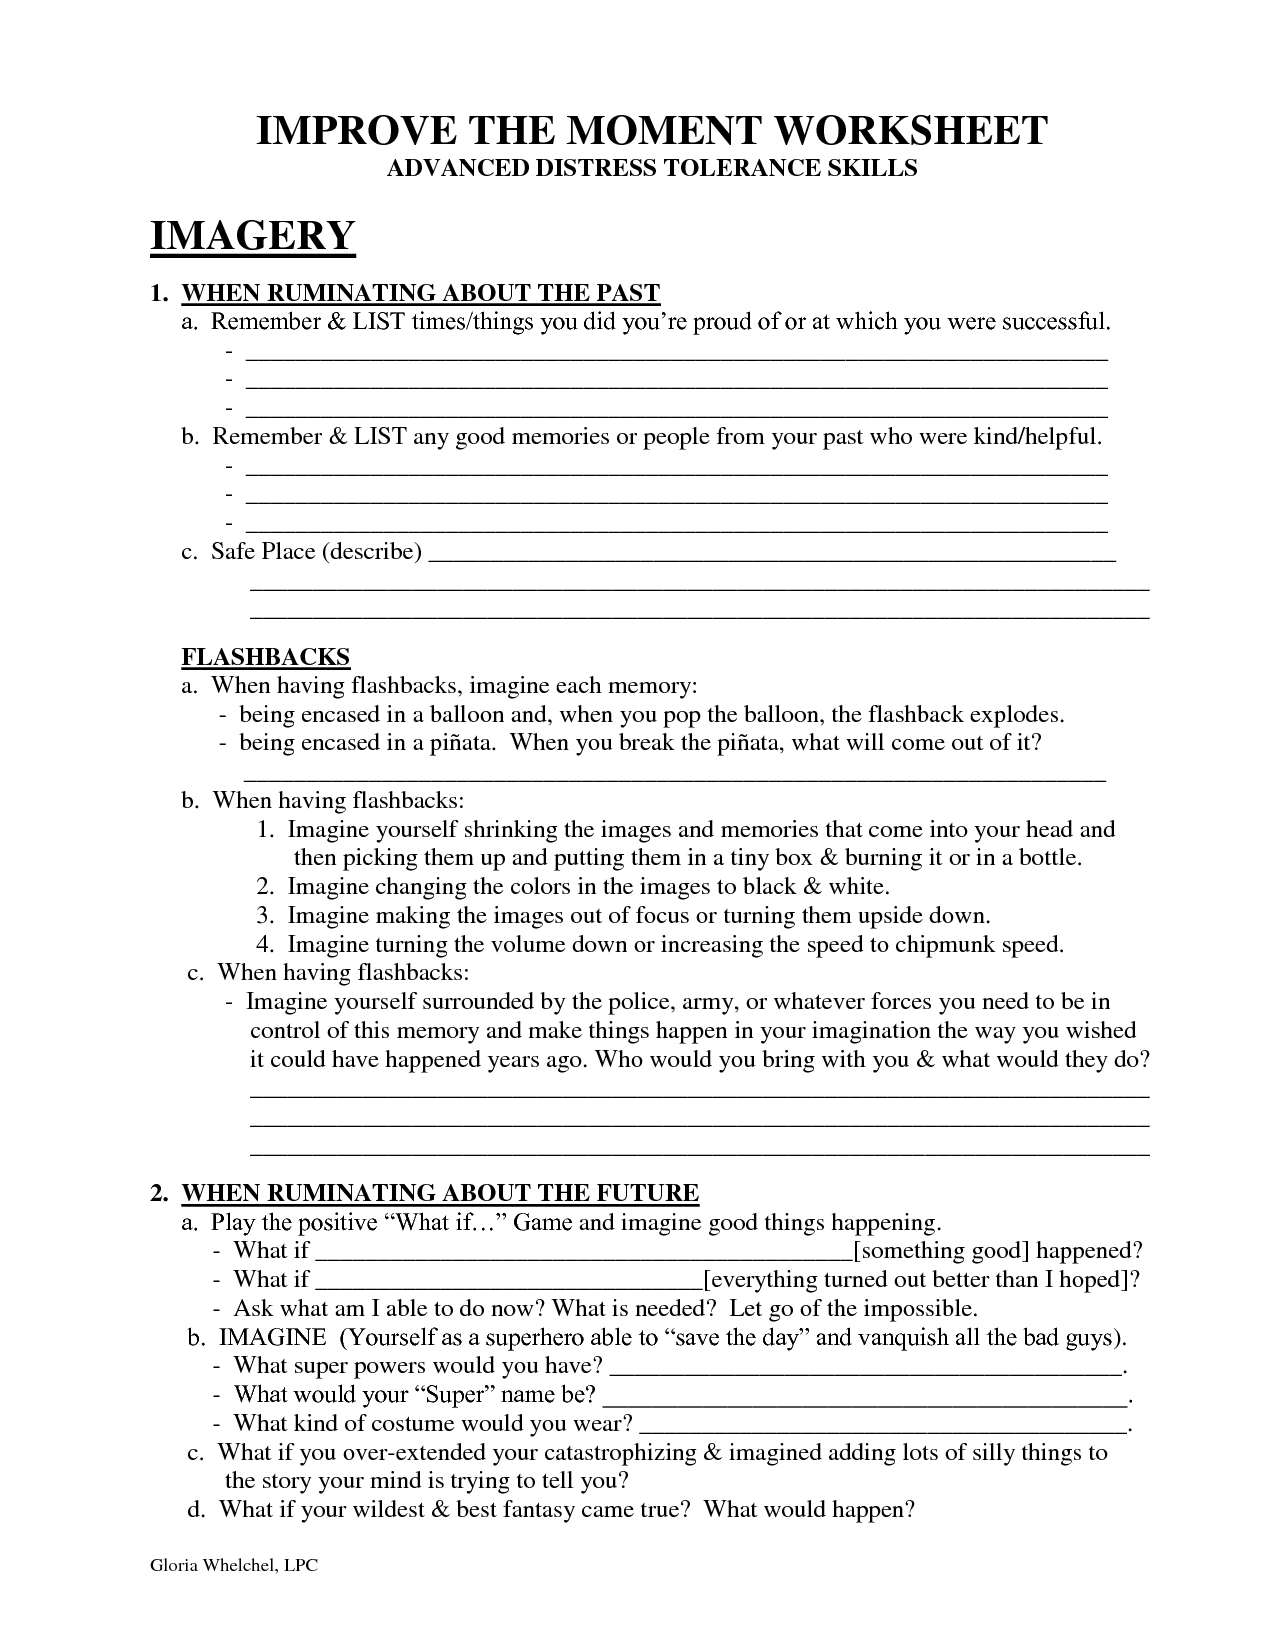 Worksheets Self Esteem Worksheets Adults improve the moment worksheet dbt self help therapy parenting a damaged esteem can wreck your career and harm relationships you turn